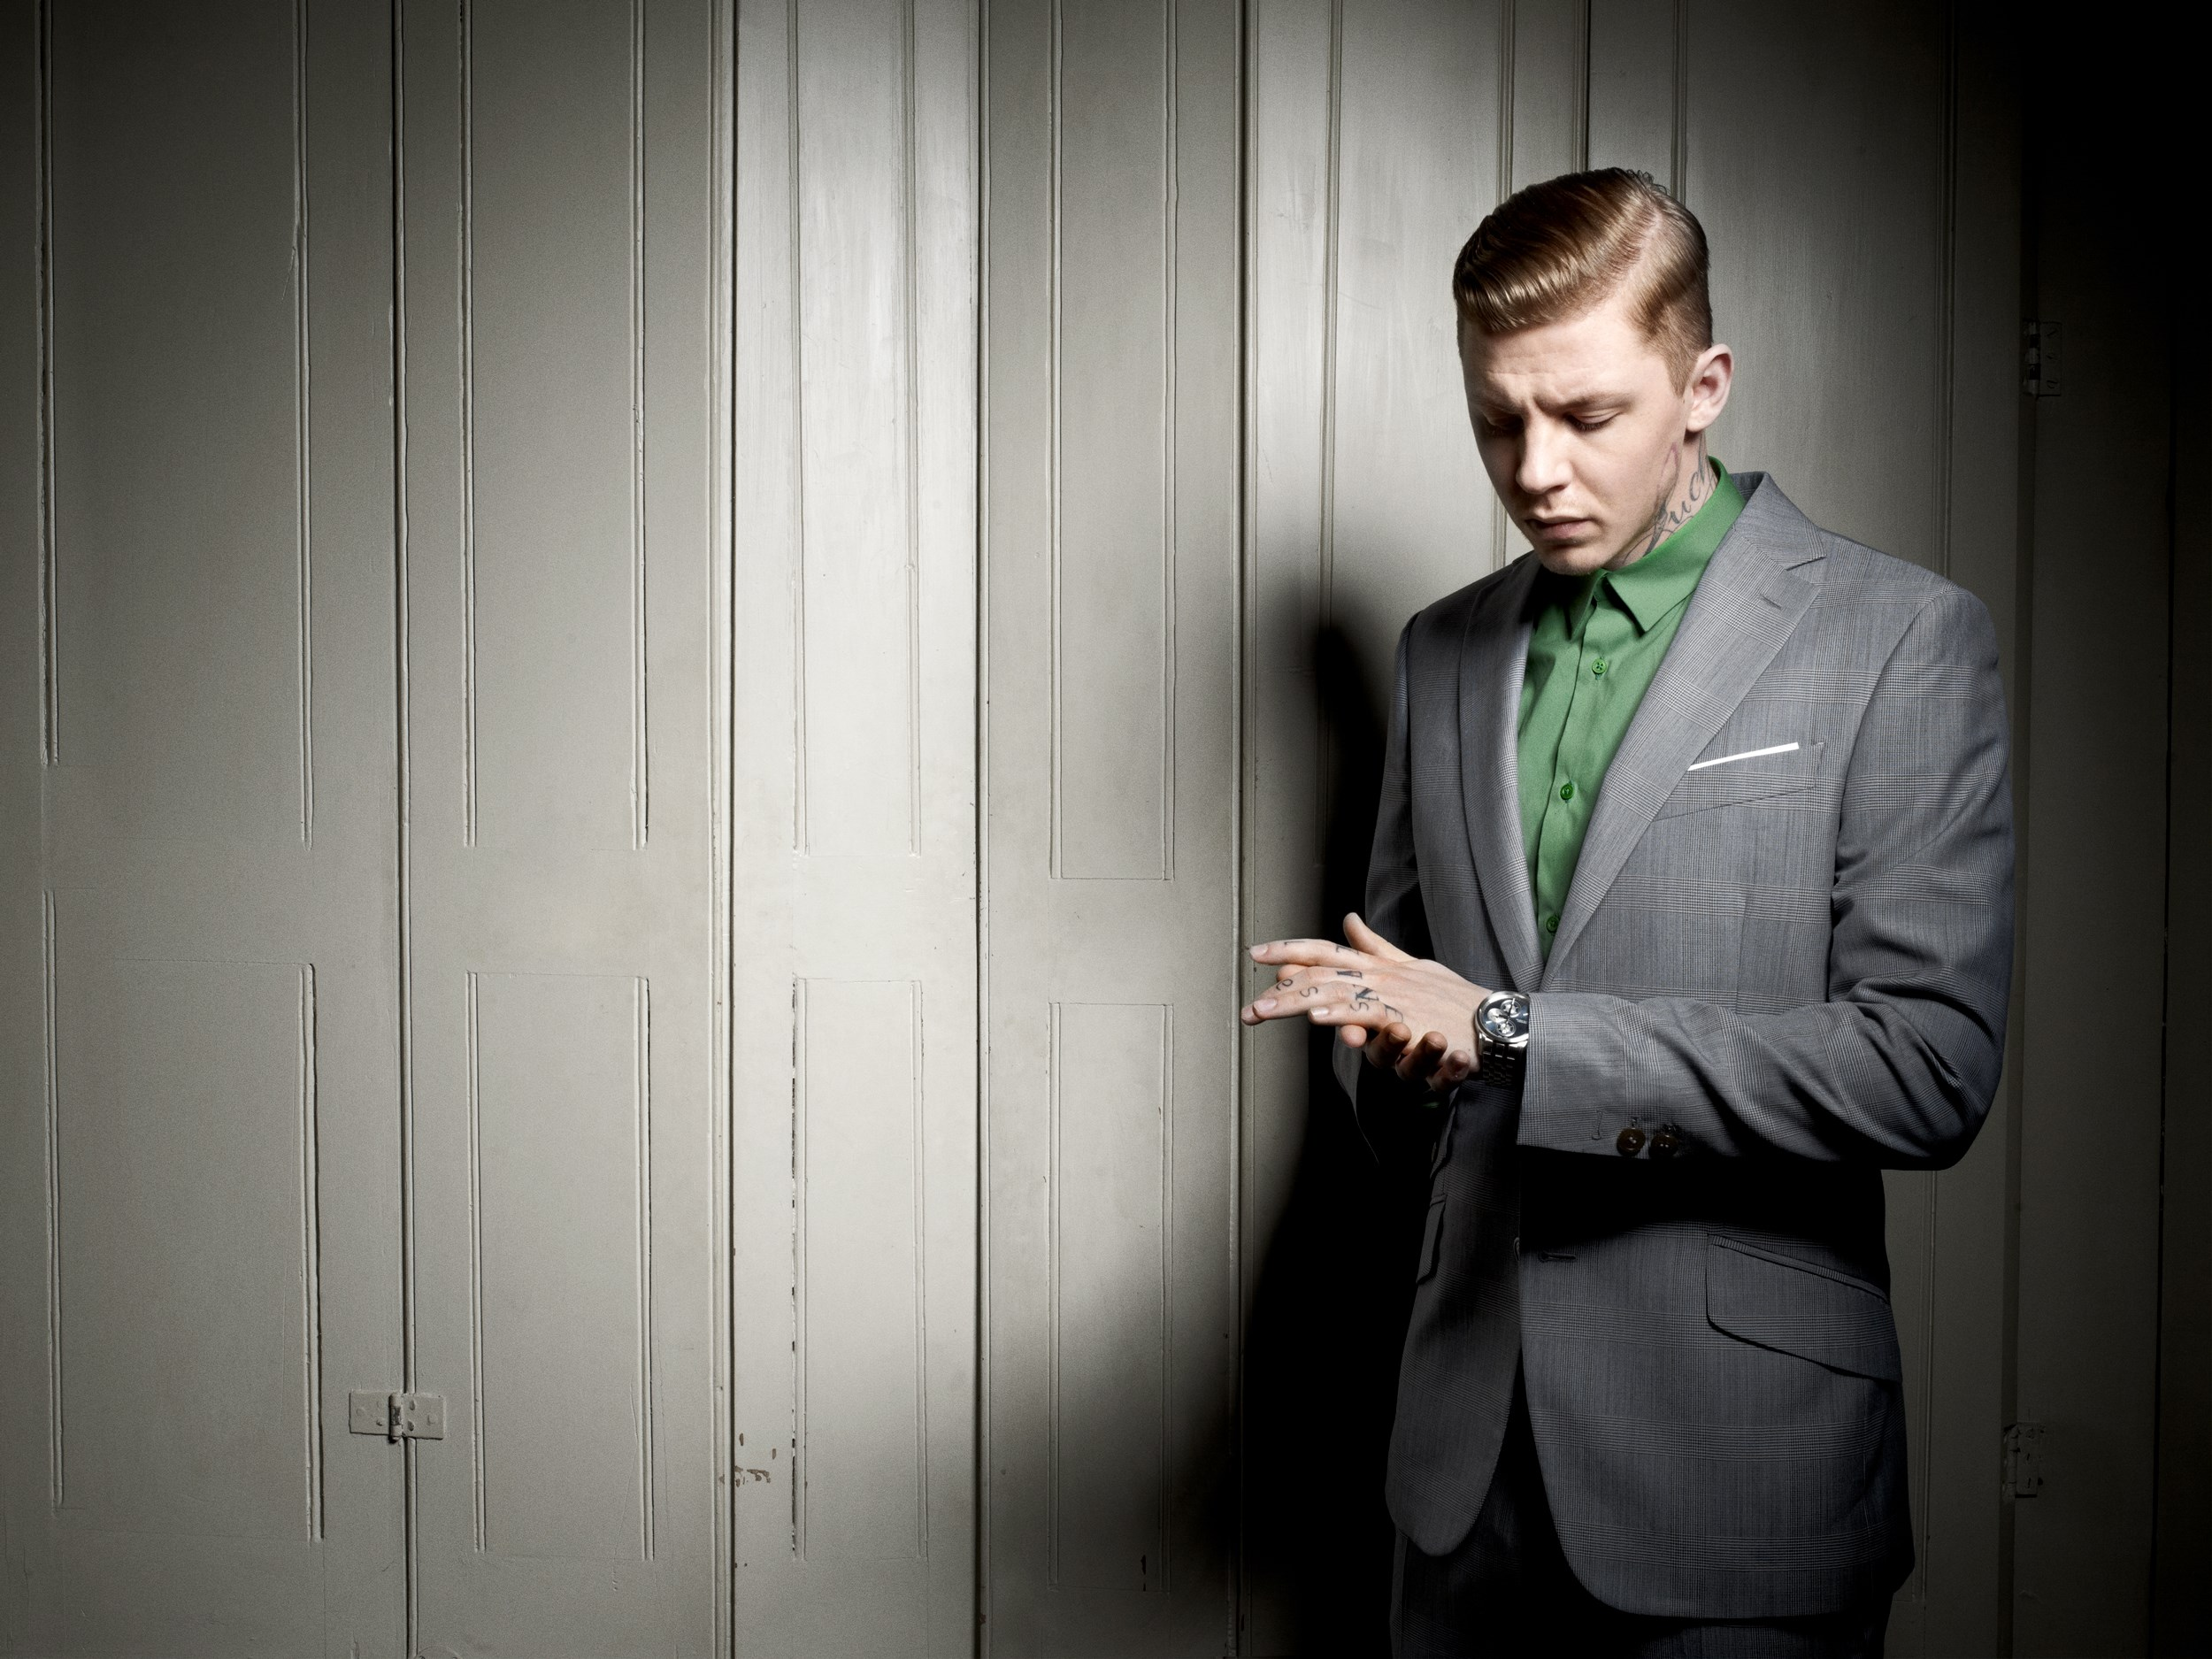 Anthony Hill - Professor Green